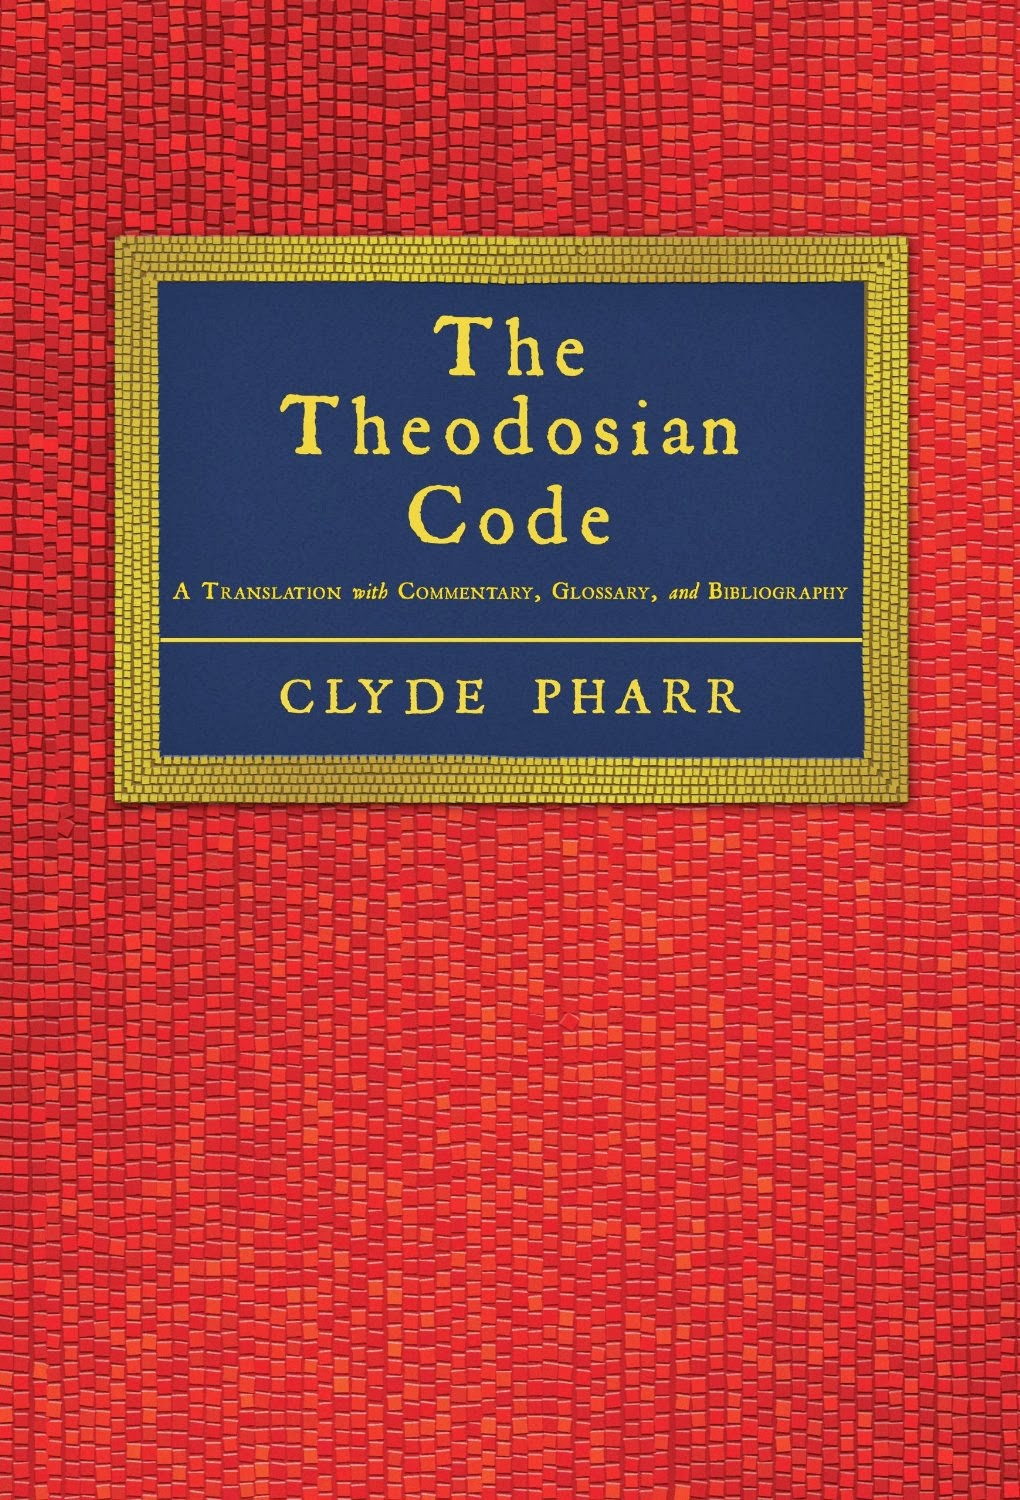 the theodosian code It is a good tradition to start here every year with a post about roman law sometimes a new resource deserves attention, but this year i want to look at a text, the theodosian code, because it will be at the heart of a three-week course at pavia with the title the theodosian code: complilation, transmission.